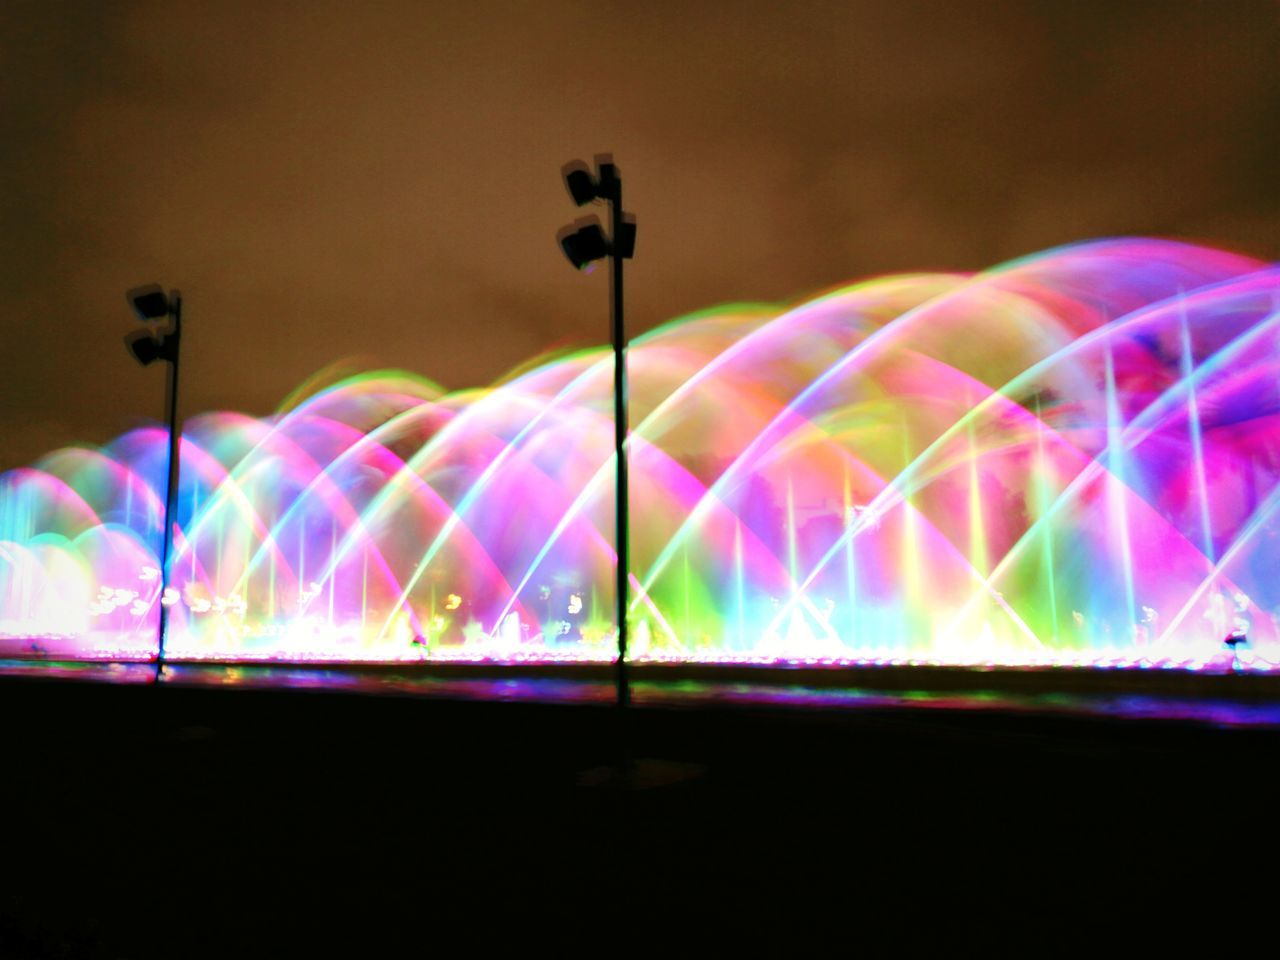 Water show in Lima Multi Colored Illuminated Night Lighting Equipment Light Beam Rainbow Light Trail Long Exposure Outdoors No People Neon Photography Themes Leica Huawei P9 Eye4photography  EyeEm Best Shots Fresh 3 City Water_collection Light In The Darkness Nightphotography Night Lights Night Photography